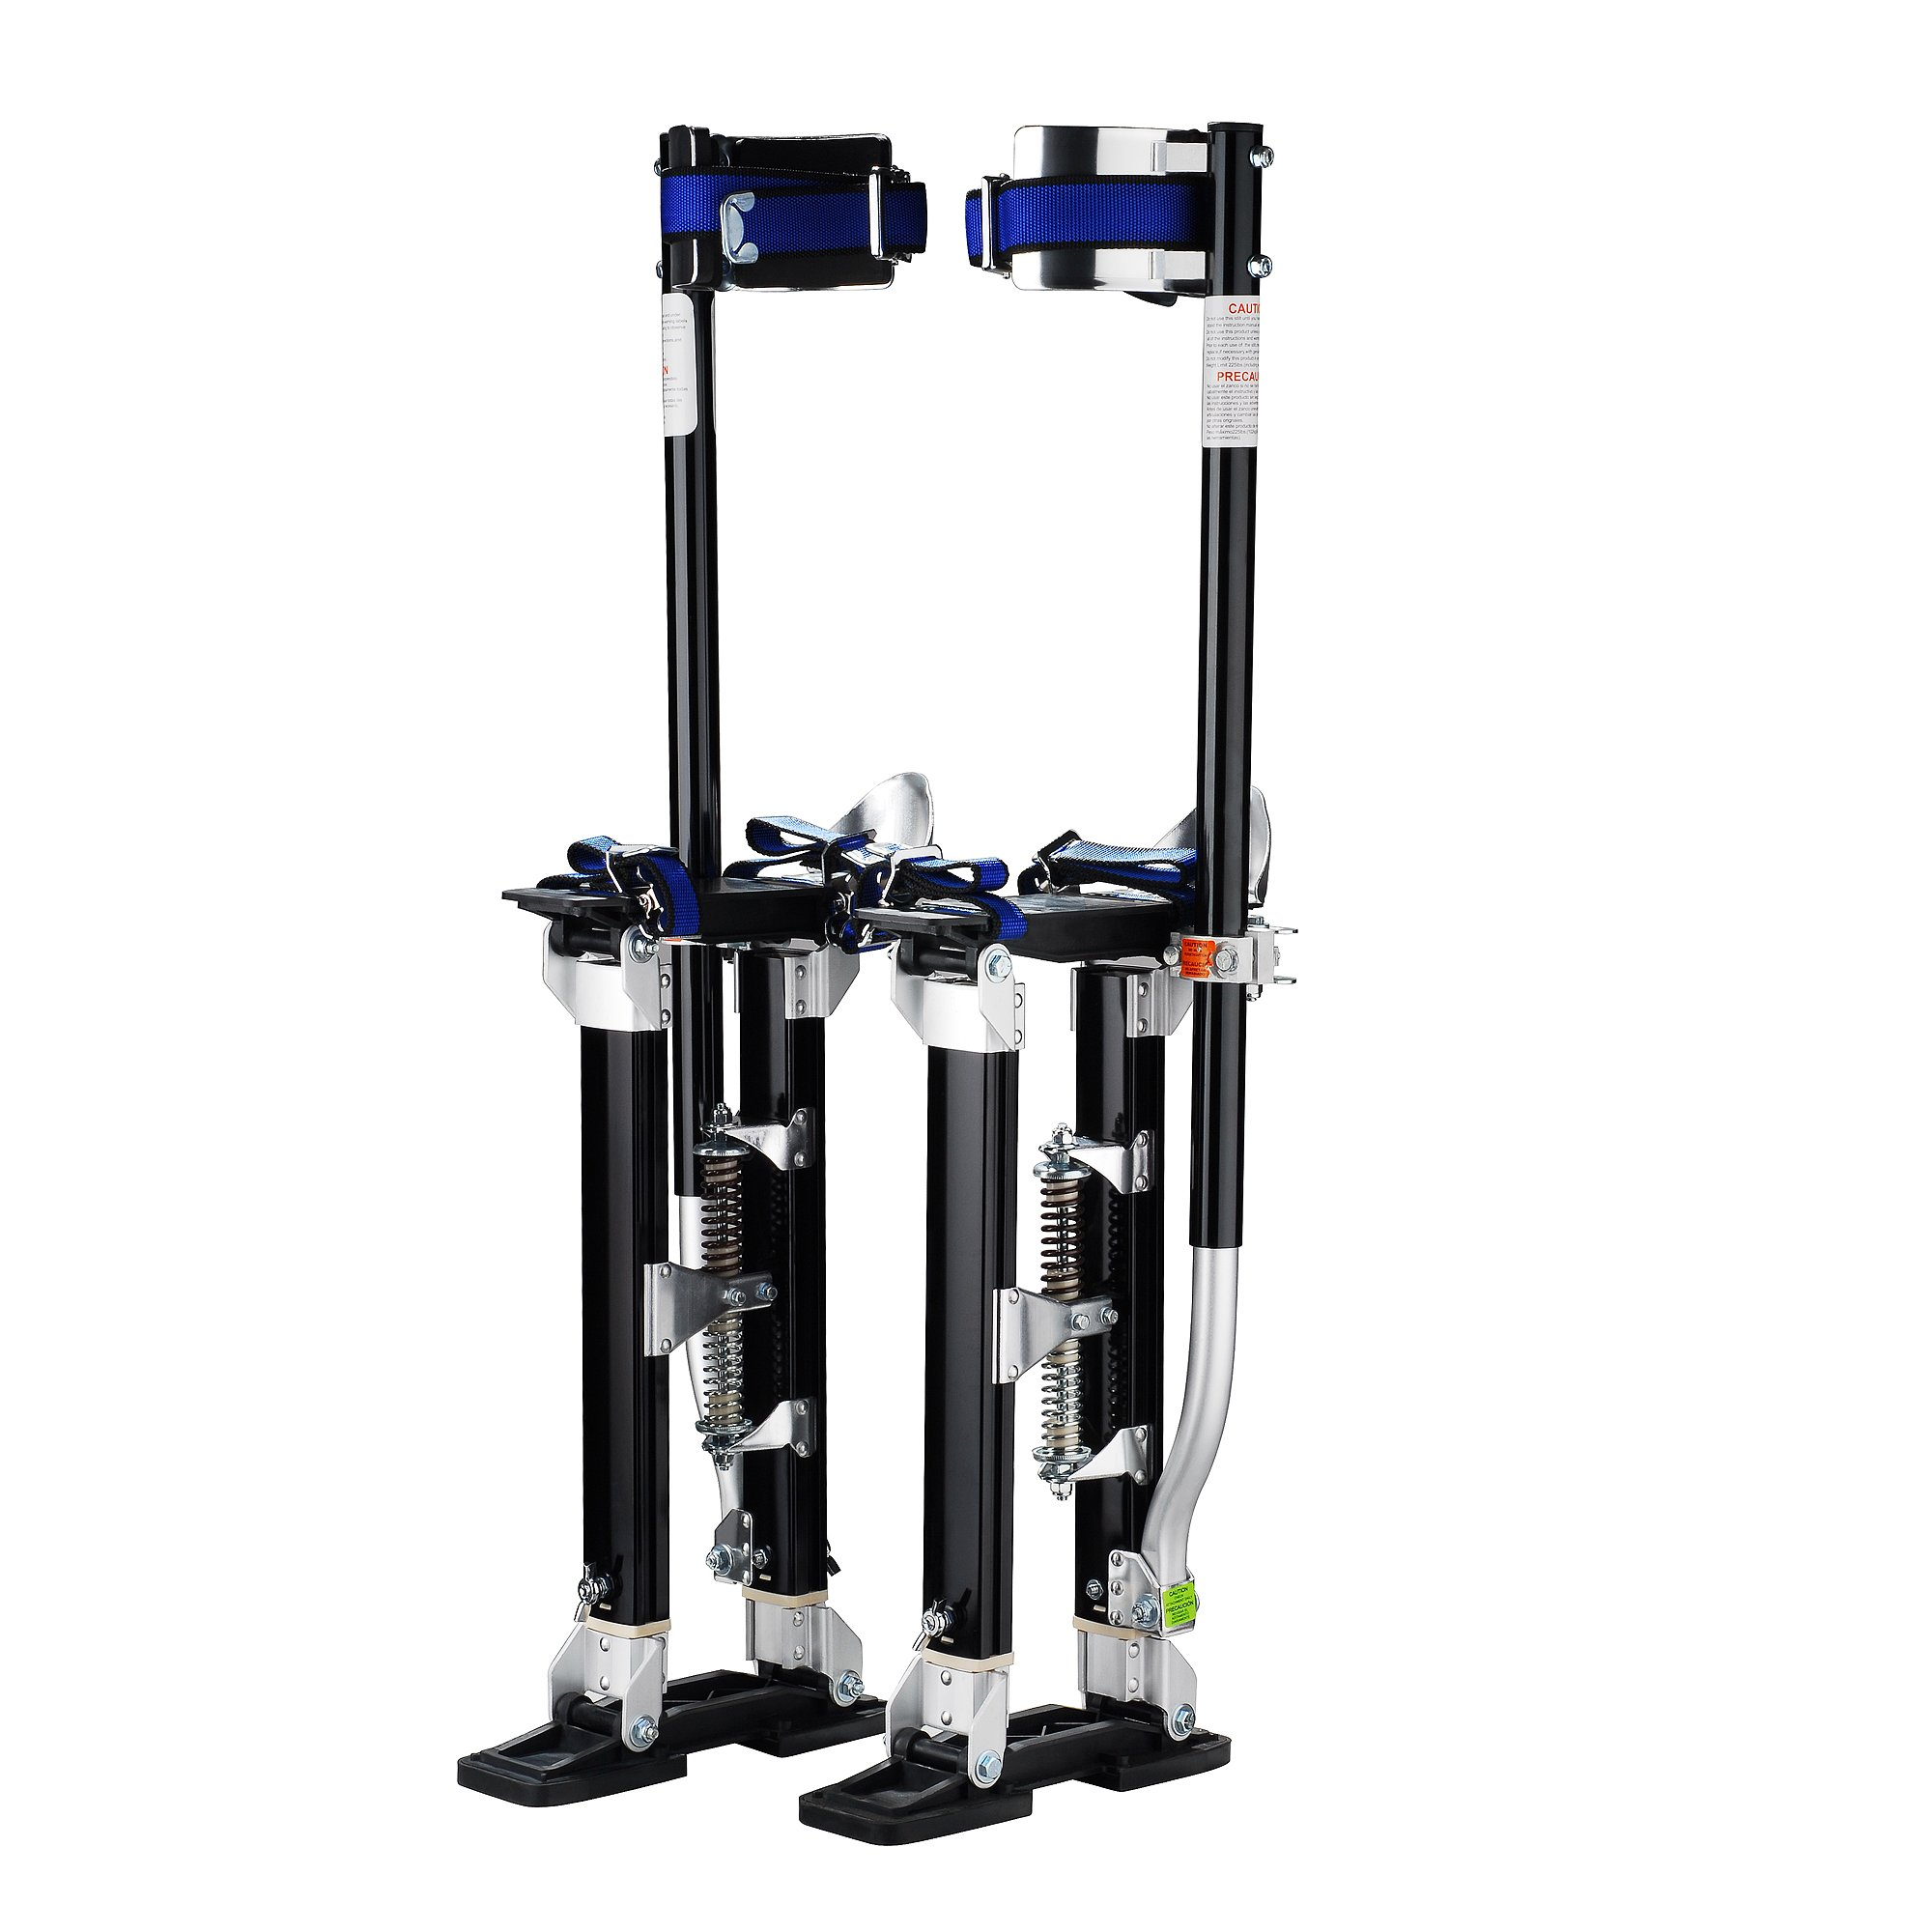 Pentagon Tool Professional 18''-30'' Black Drywall Stilts Highest Quality by Pentagon